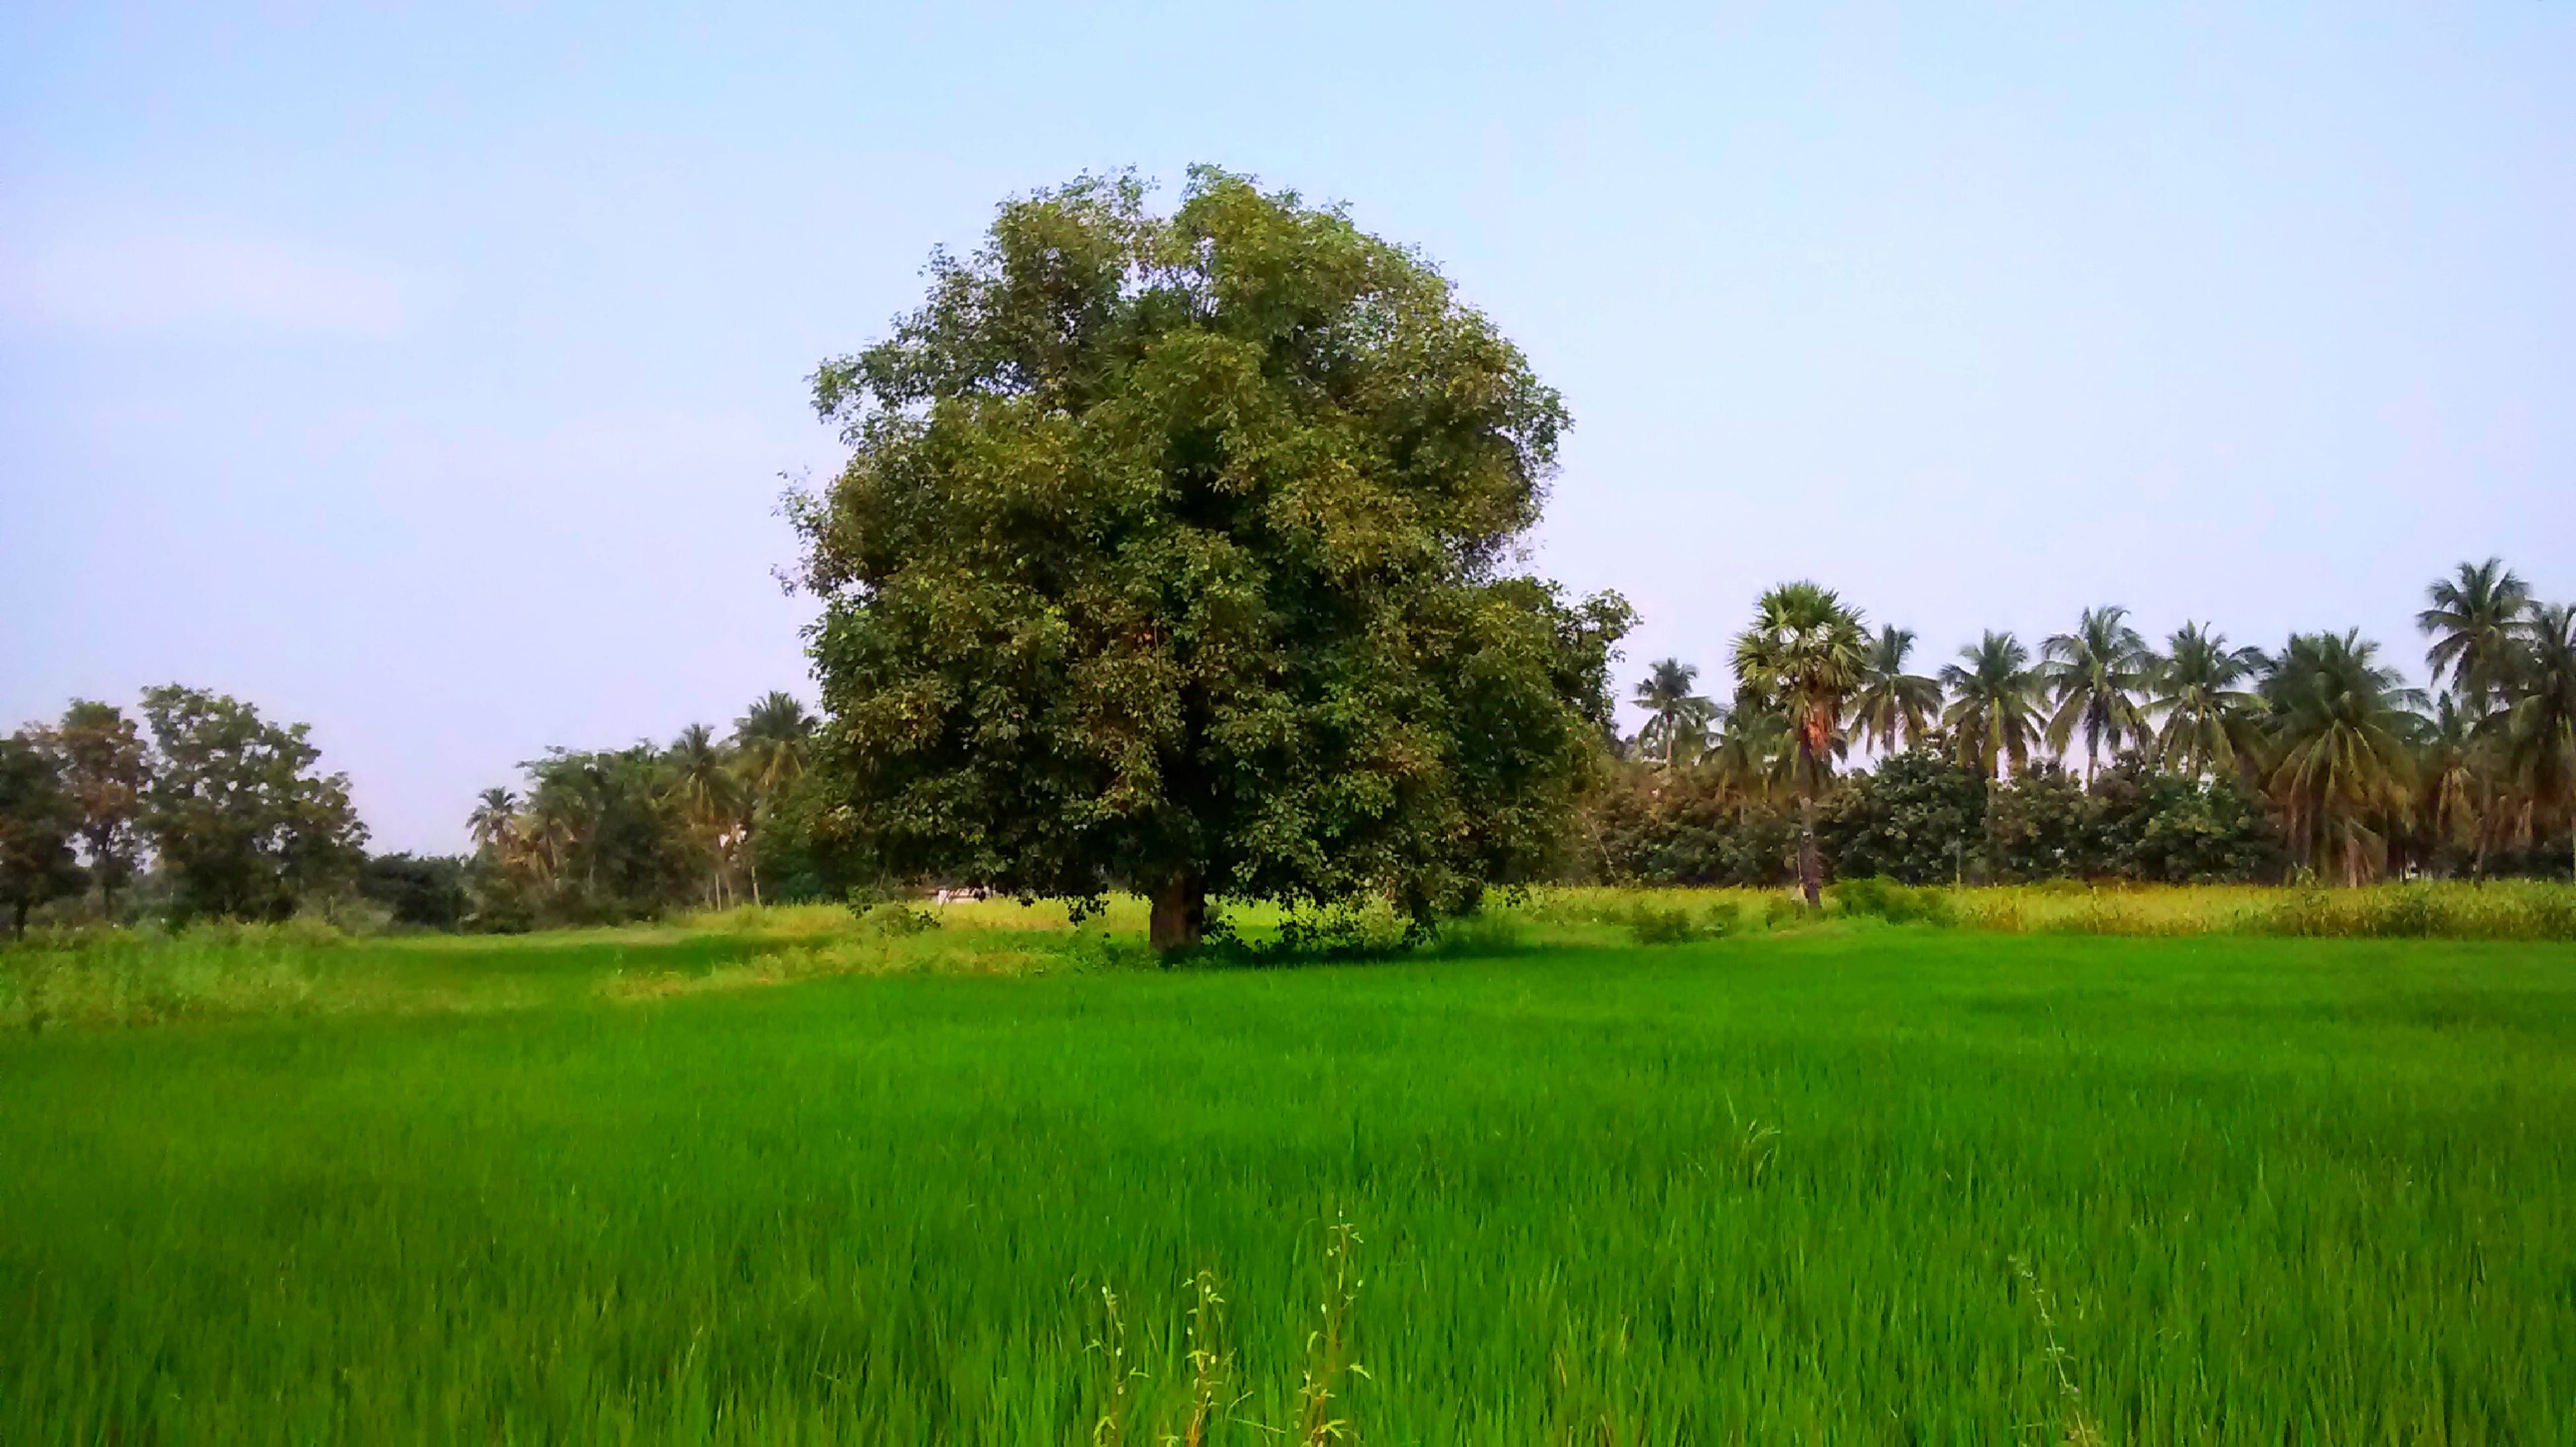 tree, grass, green color, field, tranquility, tranquil scene, growth, landscape, grassy, clear sky, beauty in nature, scenics, nature, green, lush foliage, sky, non-urban scene, rural scene, day, idyllic